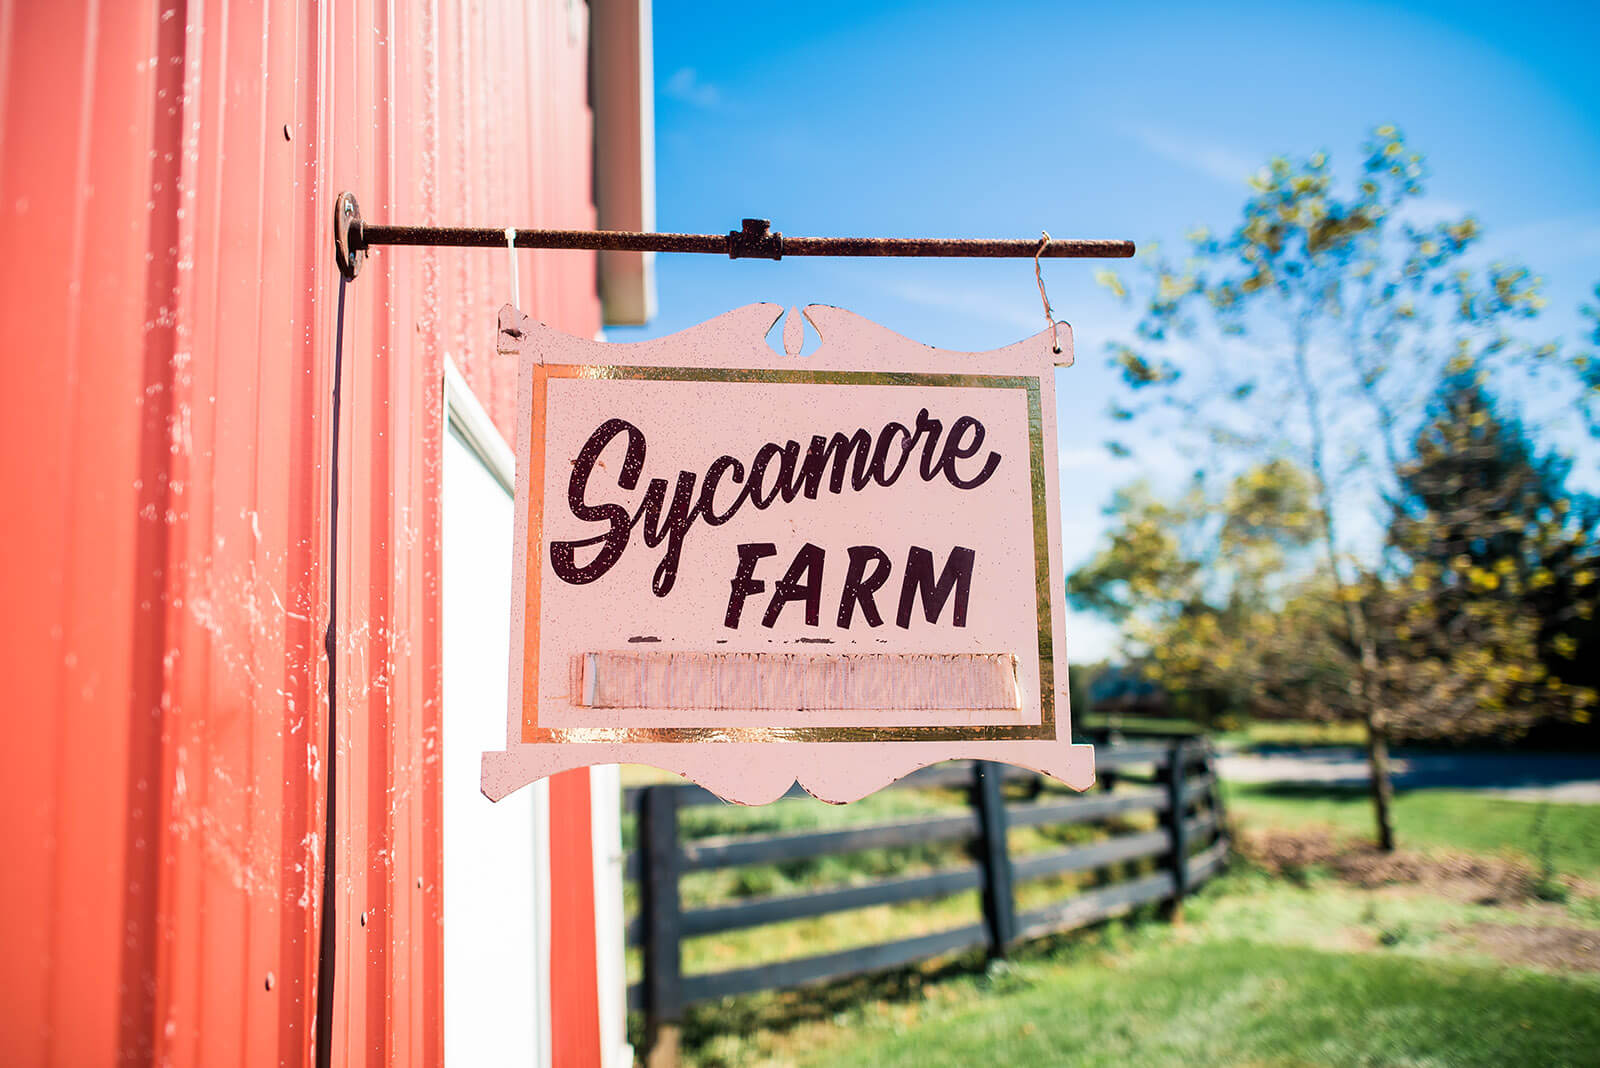 About Sycamore Farm